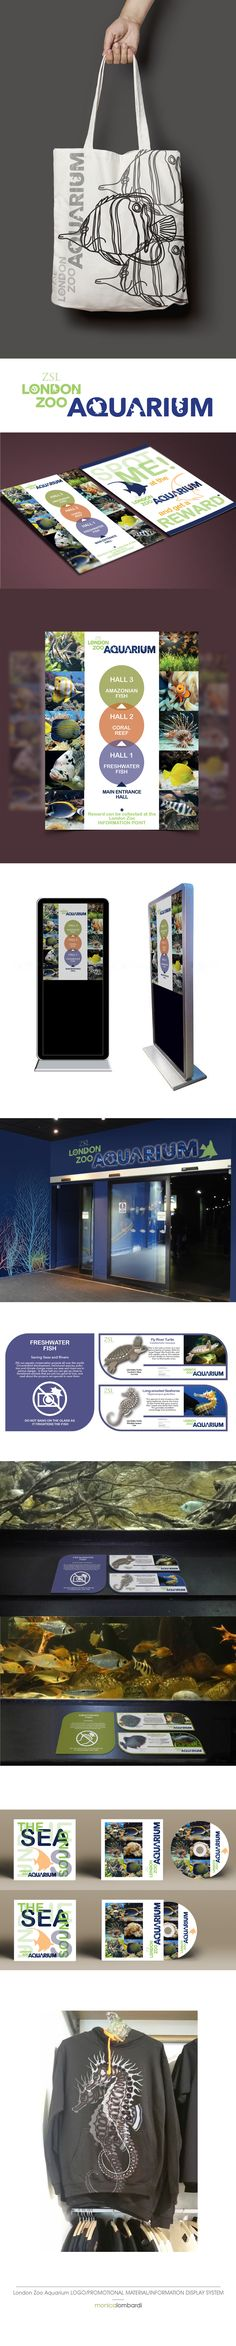 London Zoo Aquarium . Logo Design . Merchandising . Promotional Material . Information Display System - by Monica Lombardi http://www.monica-lombardi.com https://www.pinterest.com/monicalombardi1/